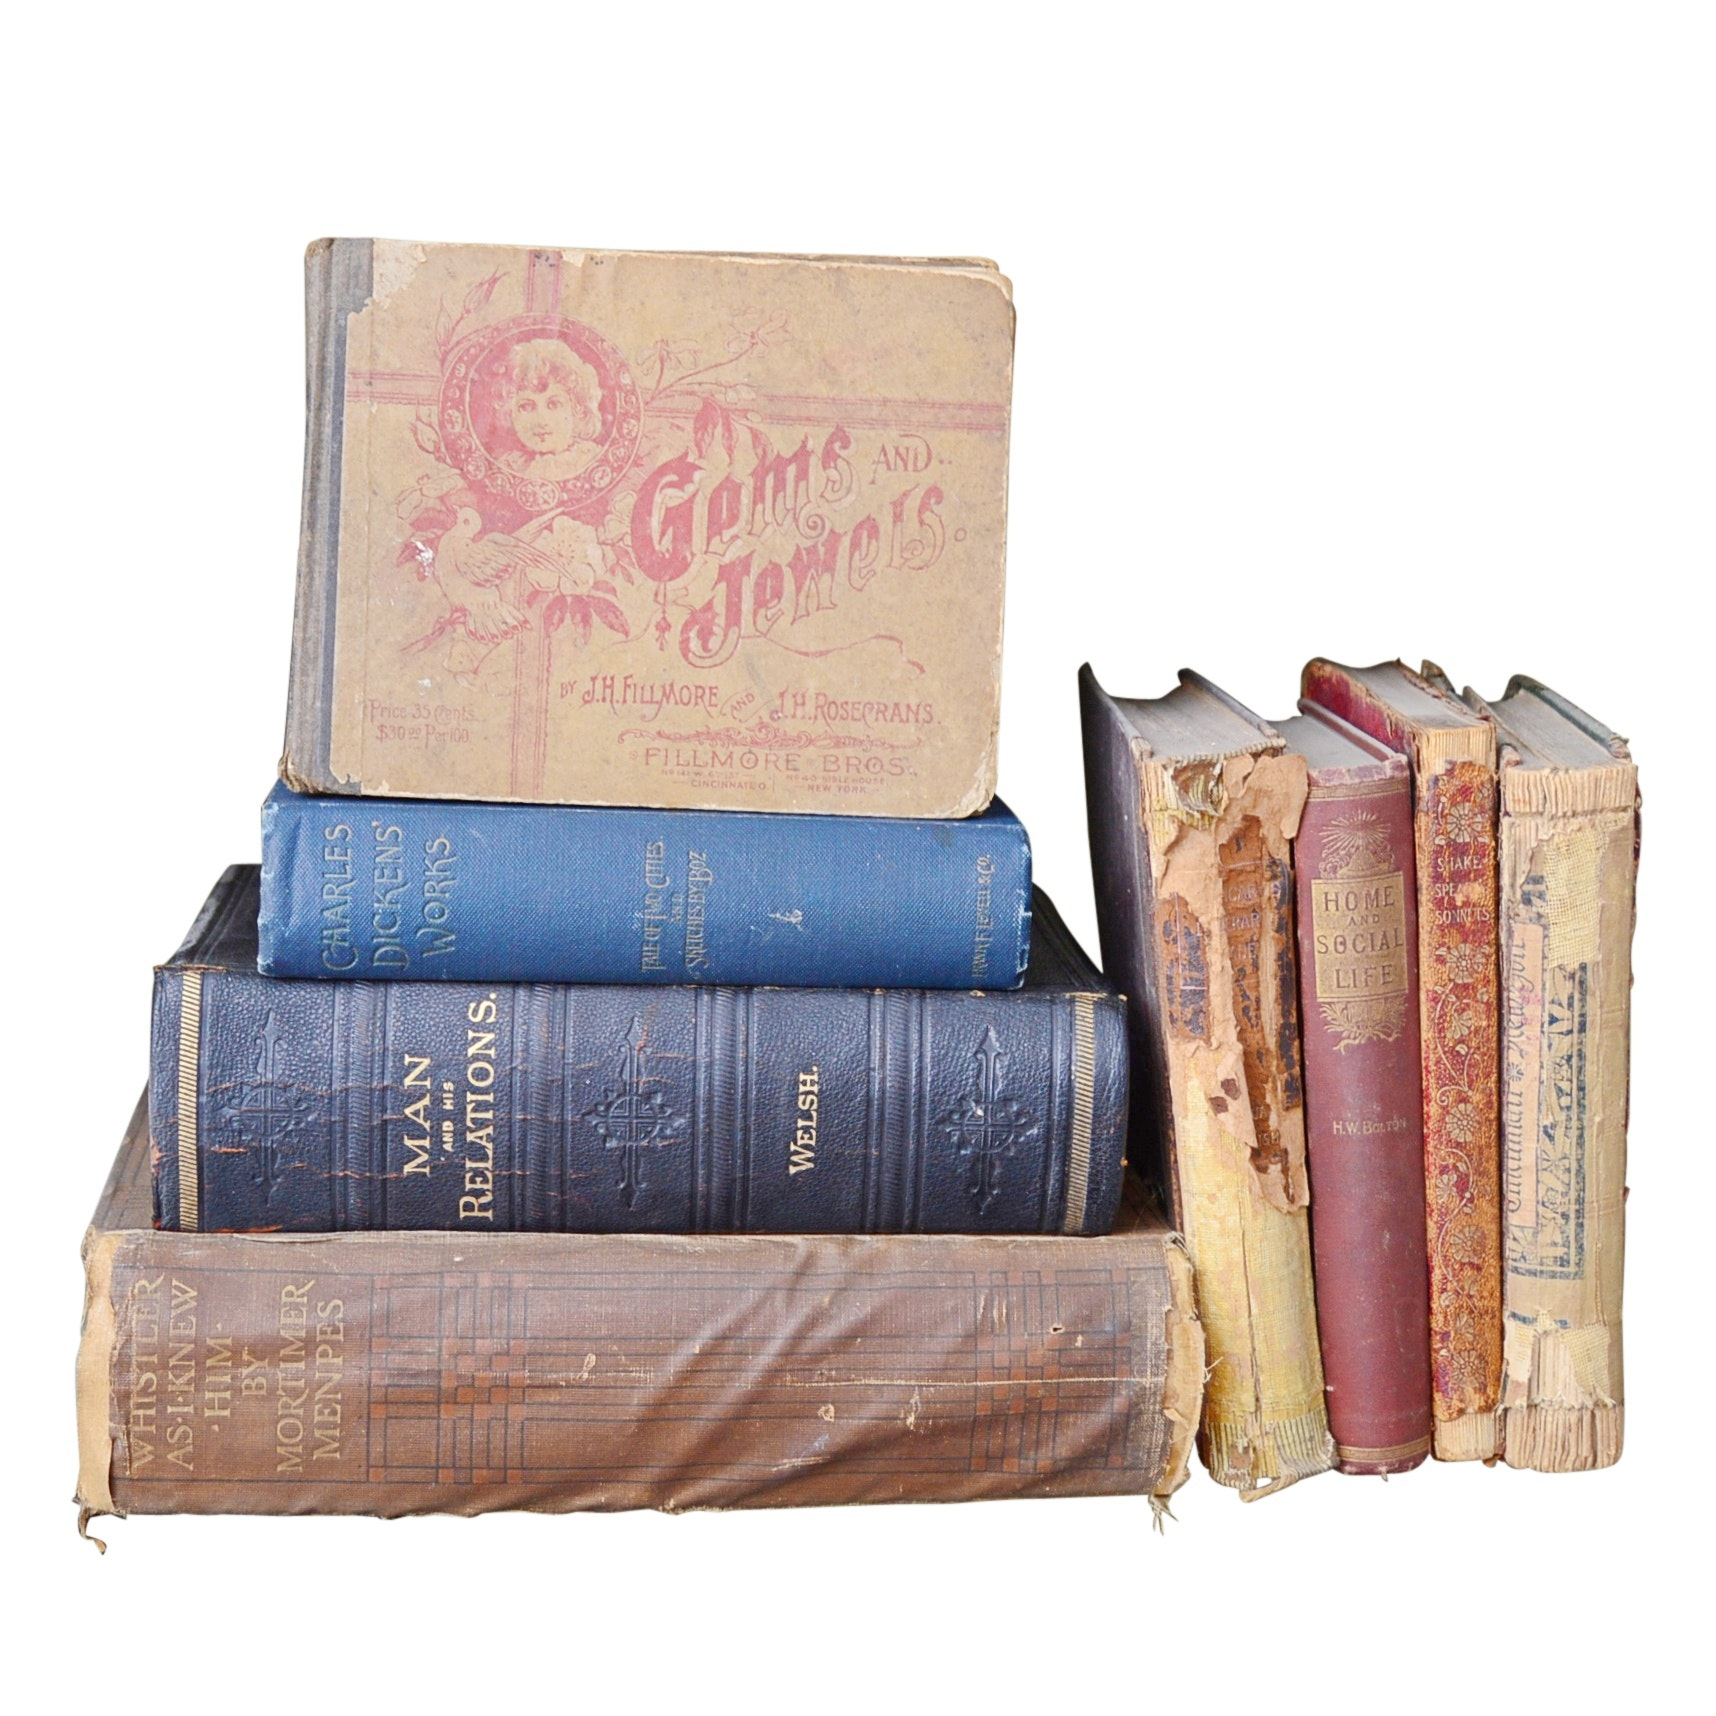 19th Century Books with Charles Dickens and More